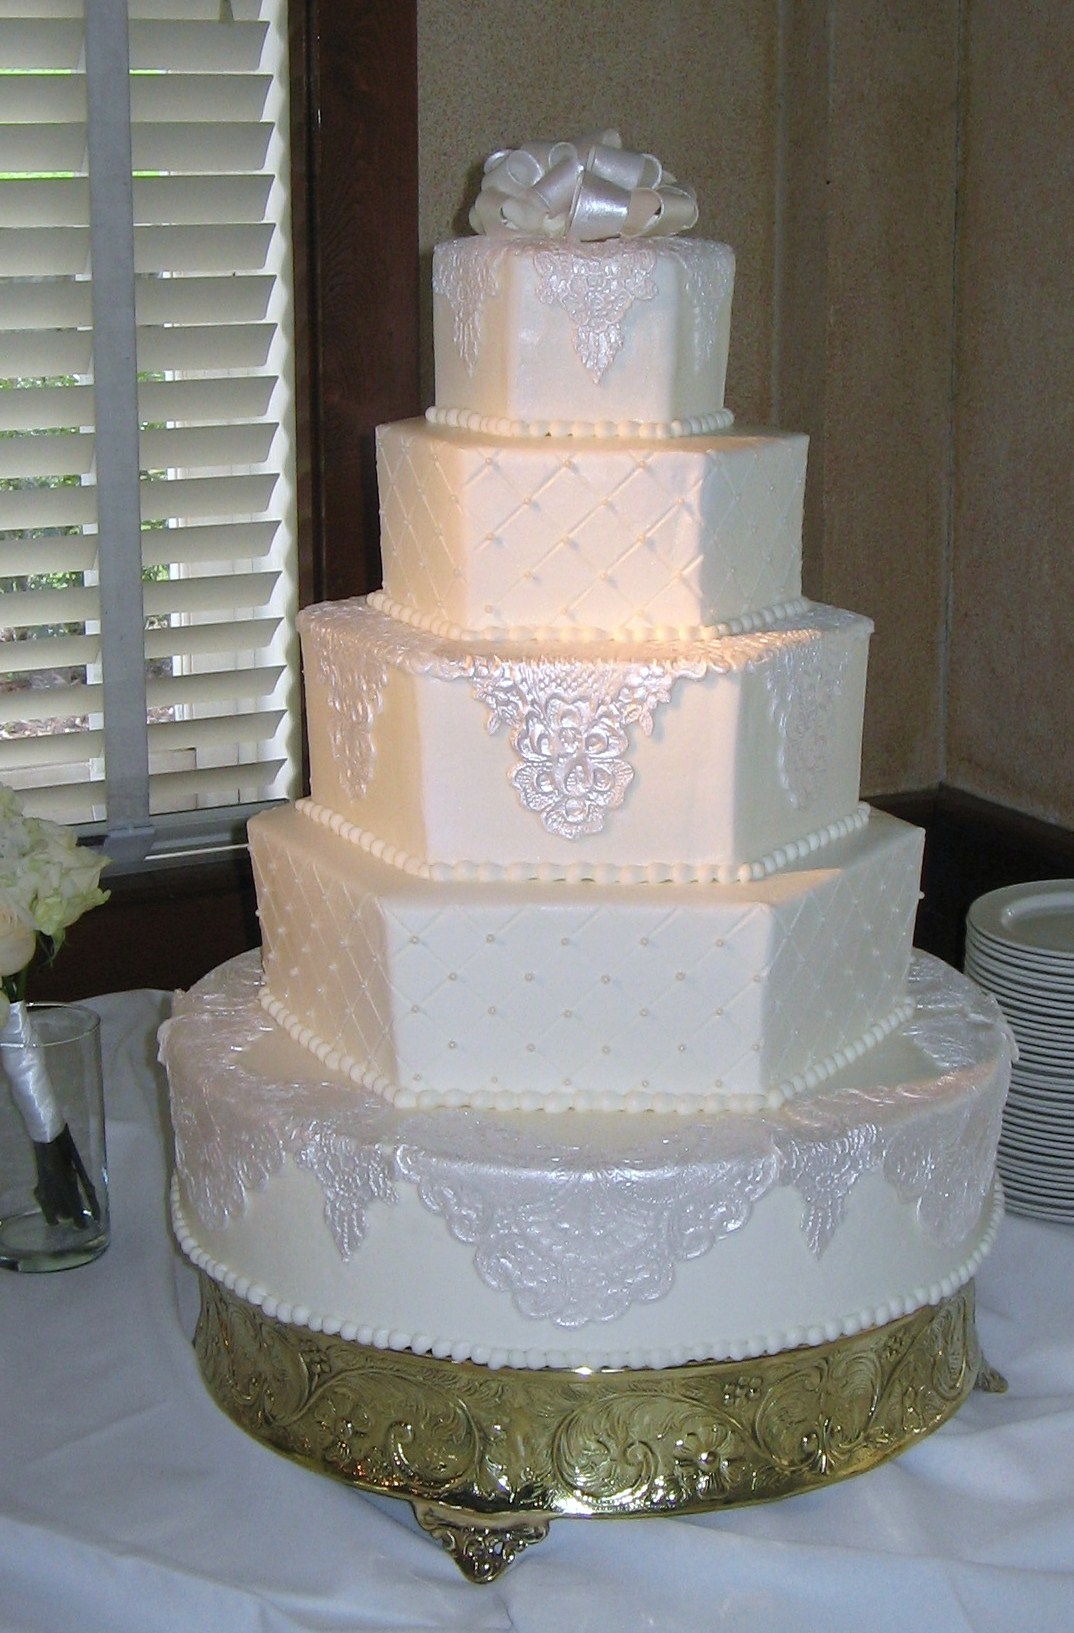 5 Tier Hexagon & Lace